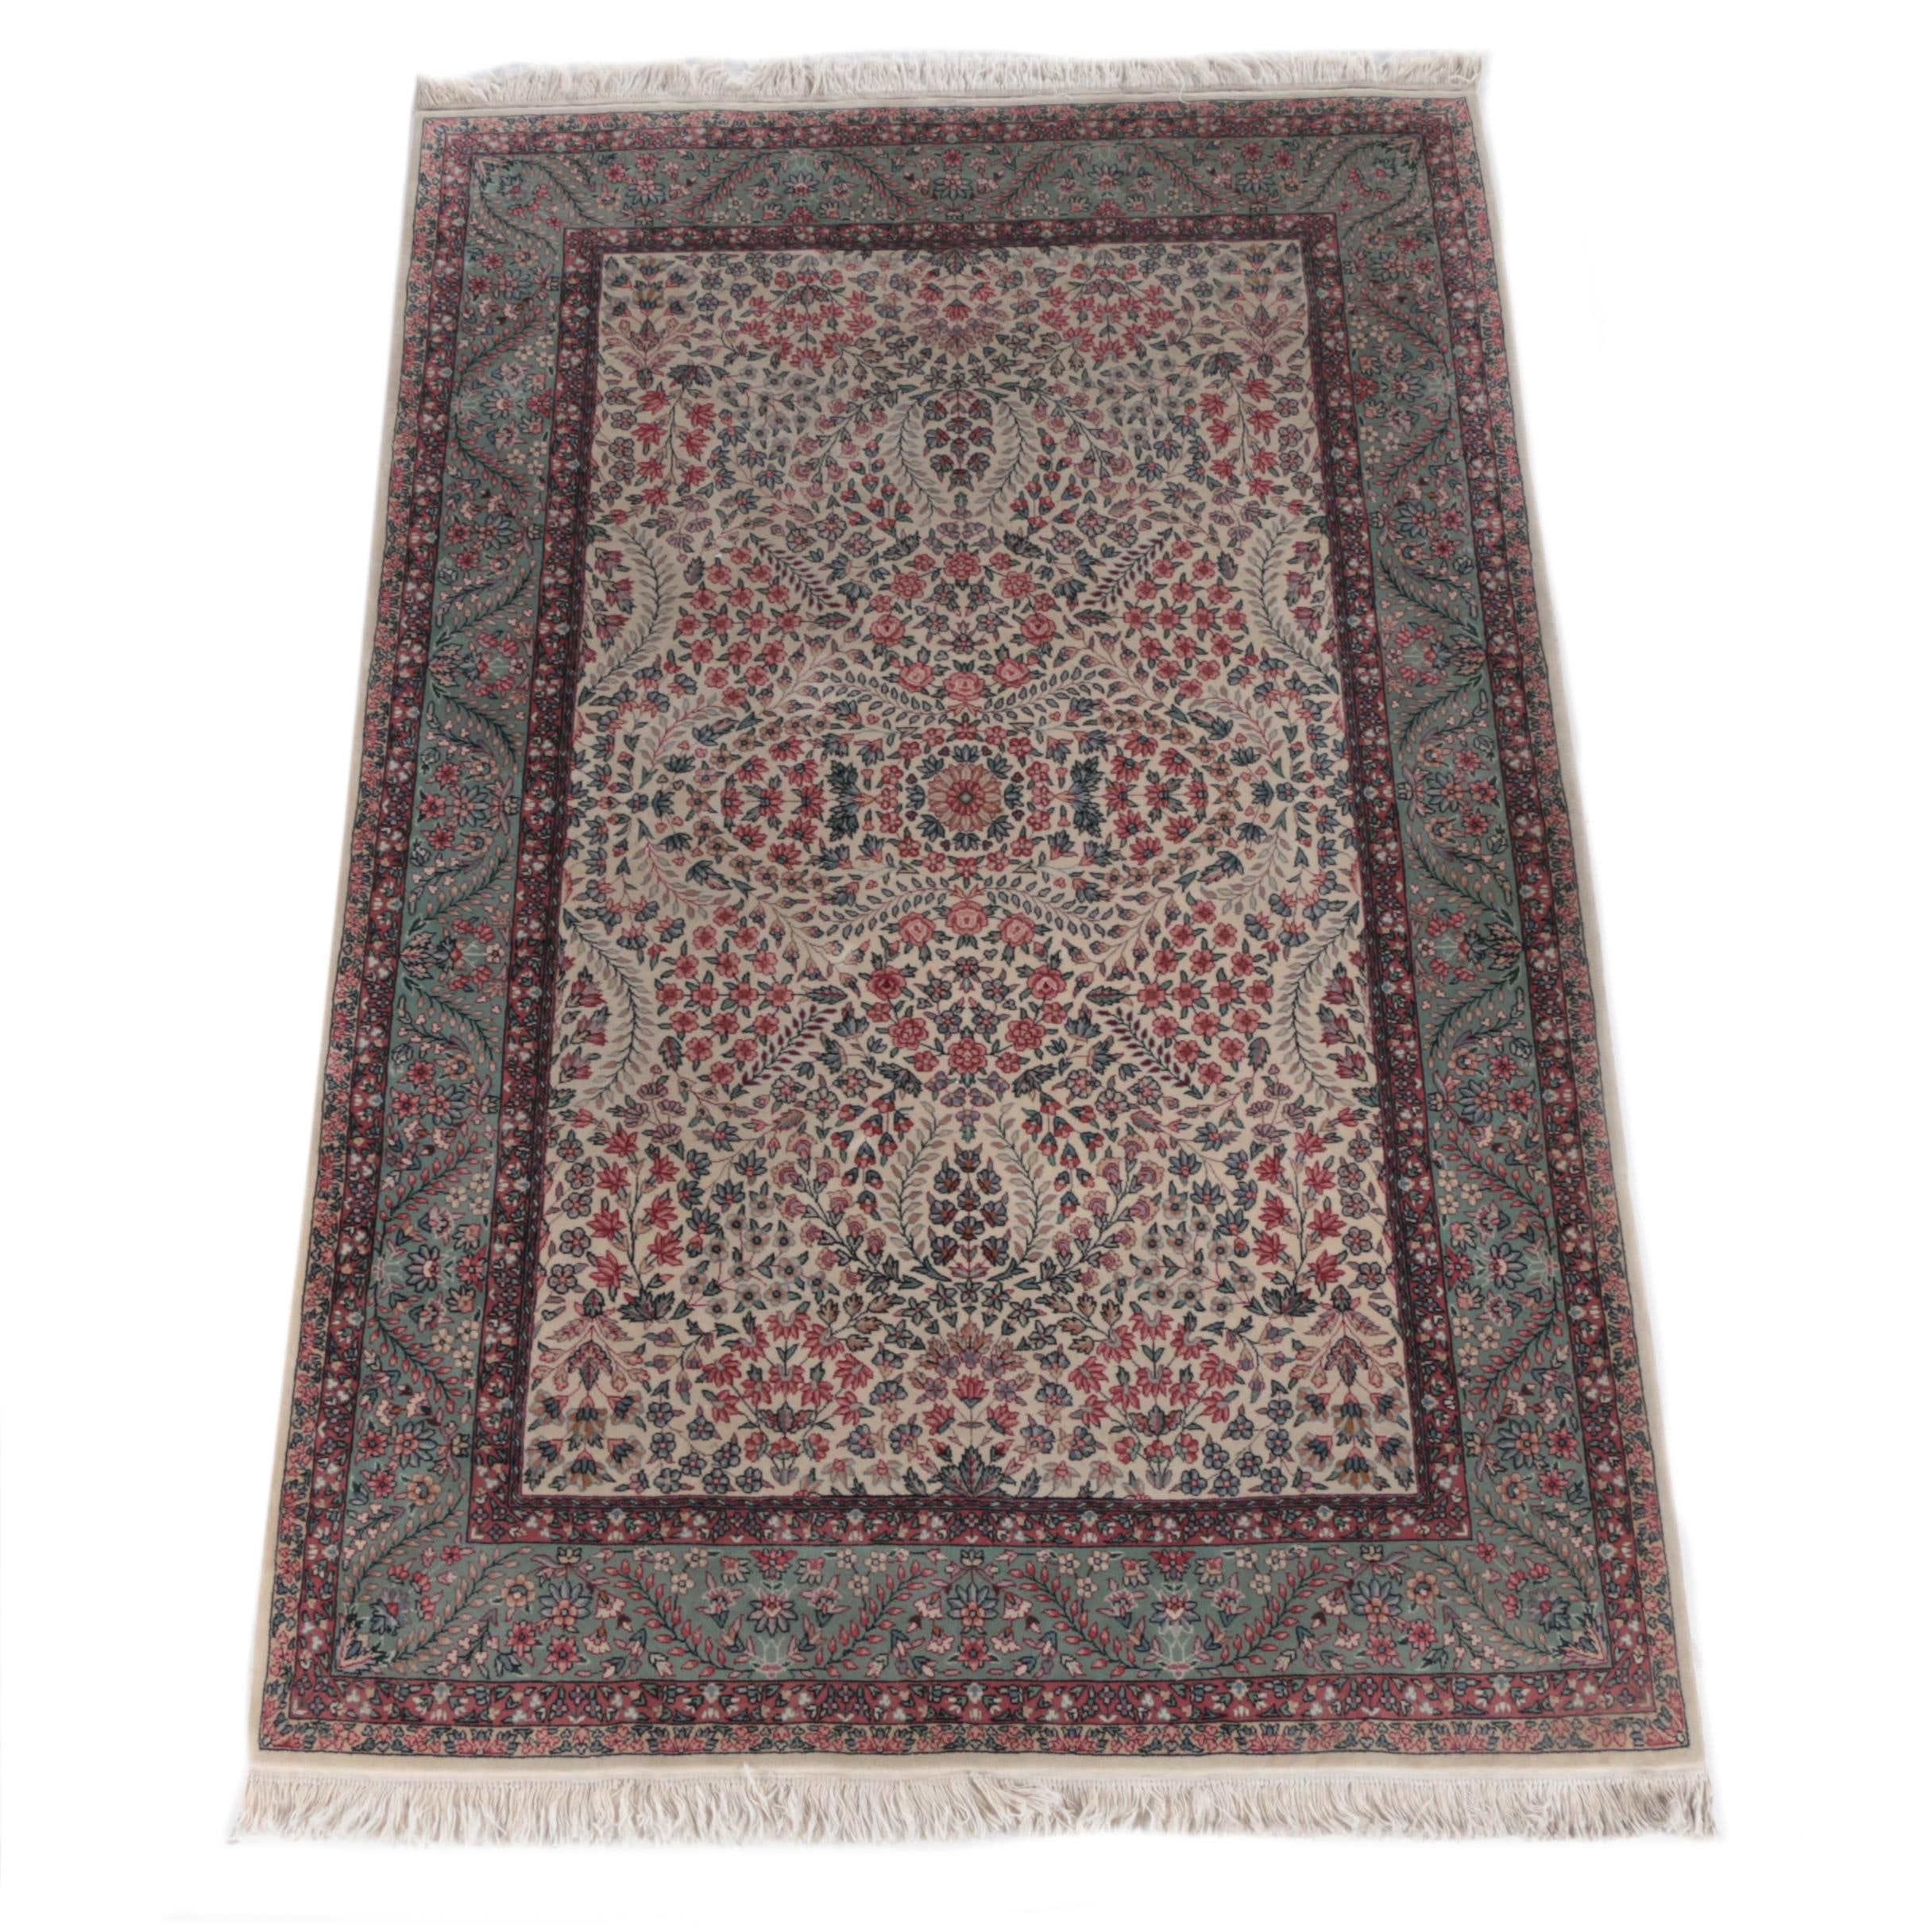 Finely Hand-Knotted Turkish Wool Area Rug